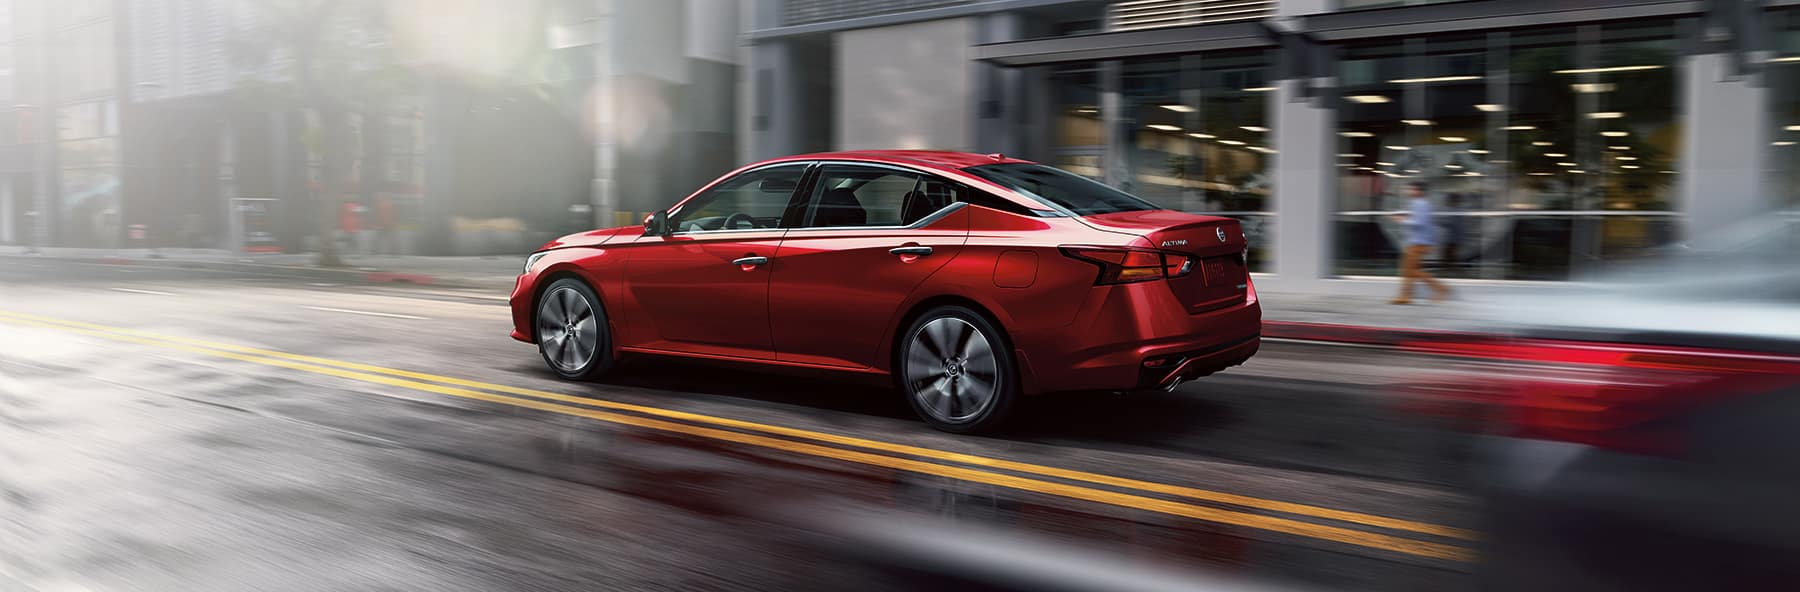 Boch Nissan South is a Nissan Dealer Near Plainville MA | Red 2020 Nissan Altima Driving in City Past Shops